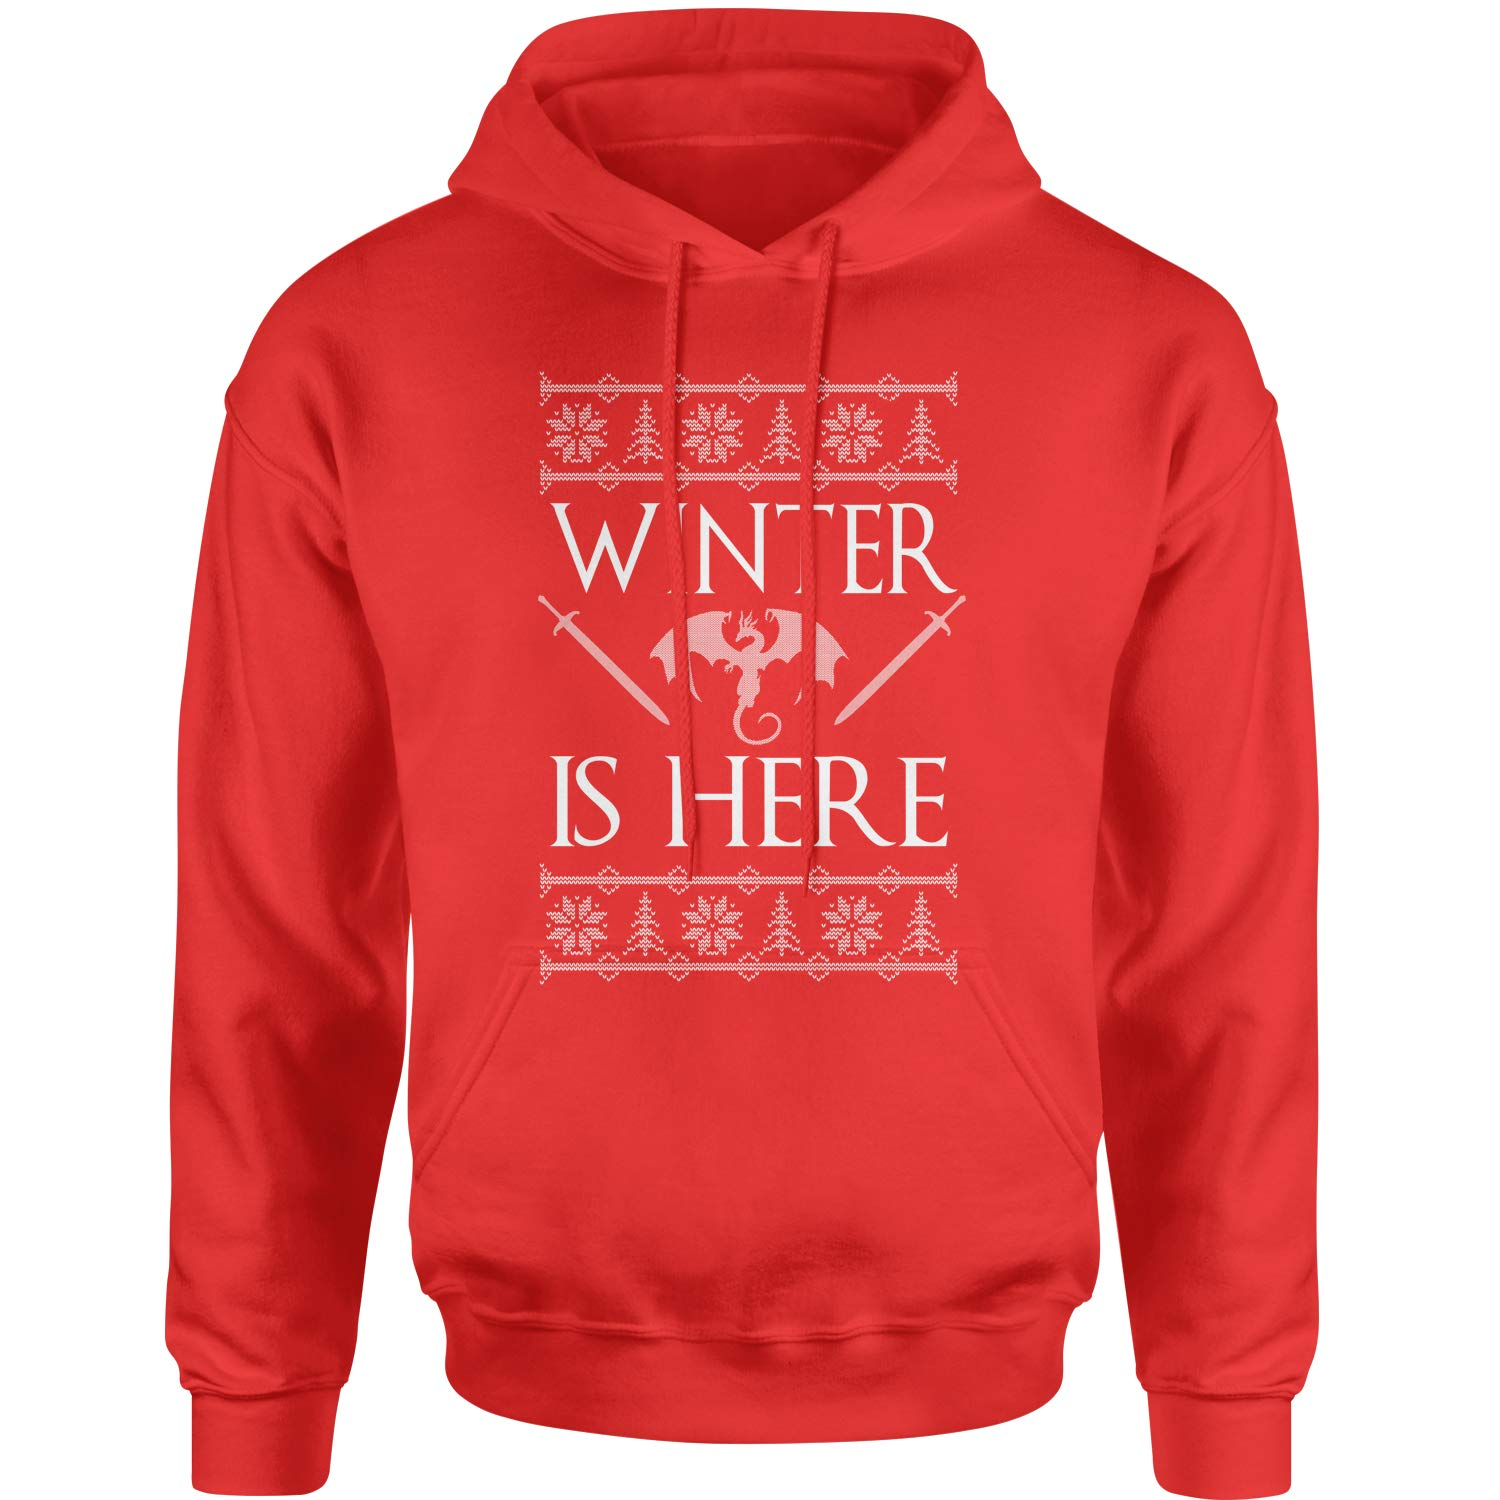 Motivated Culture Winter is Here GoT Adult Unisex Hoodie